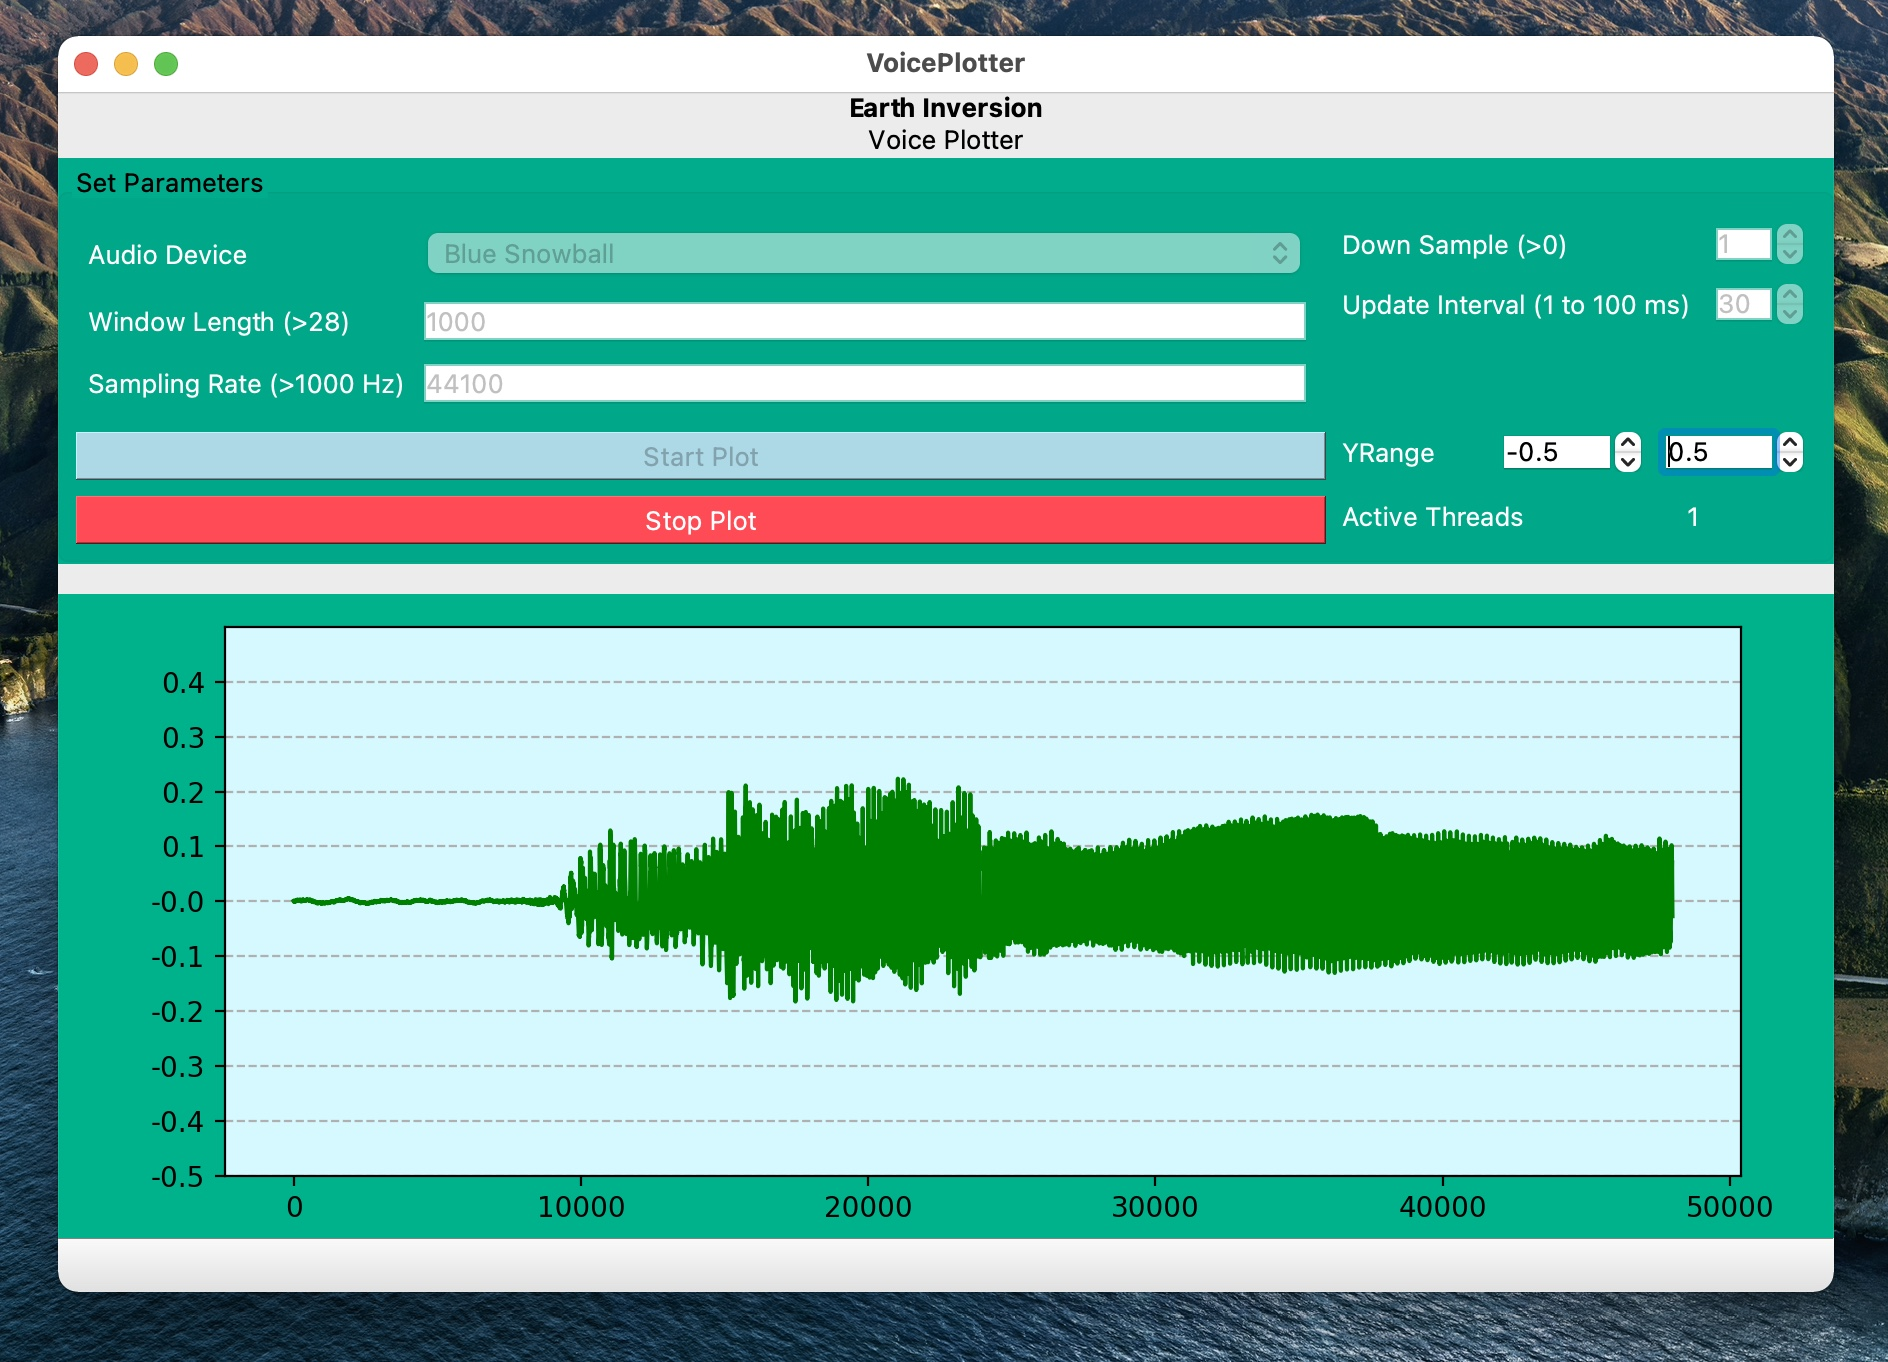 Pyqt5 application for visualizing ambient sound in real-time